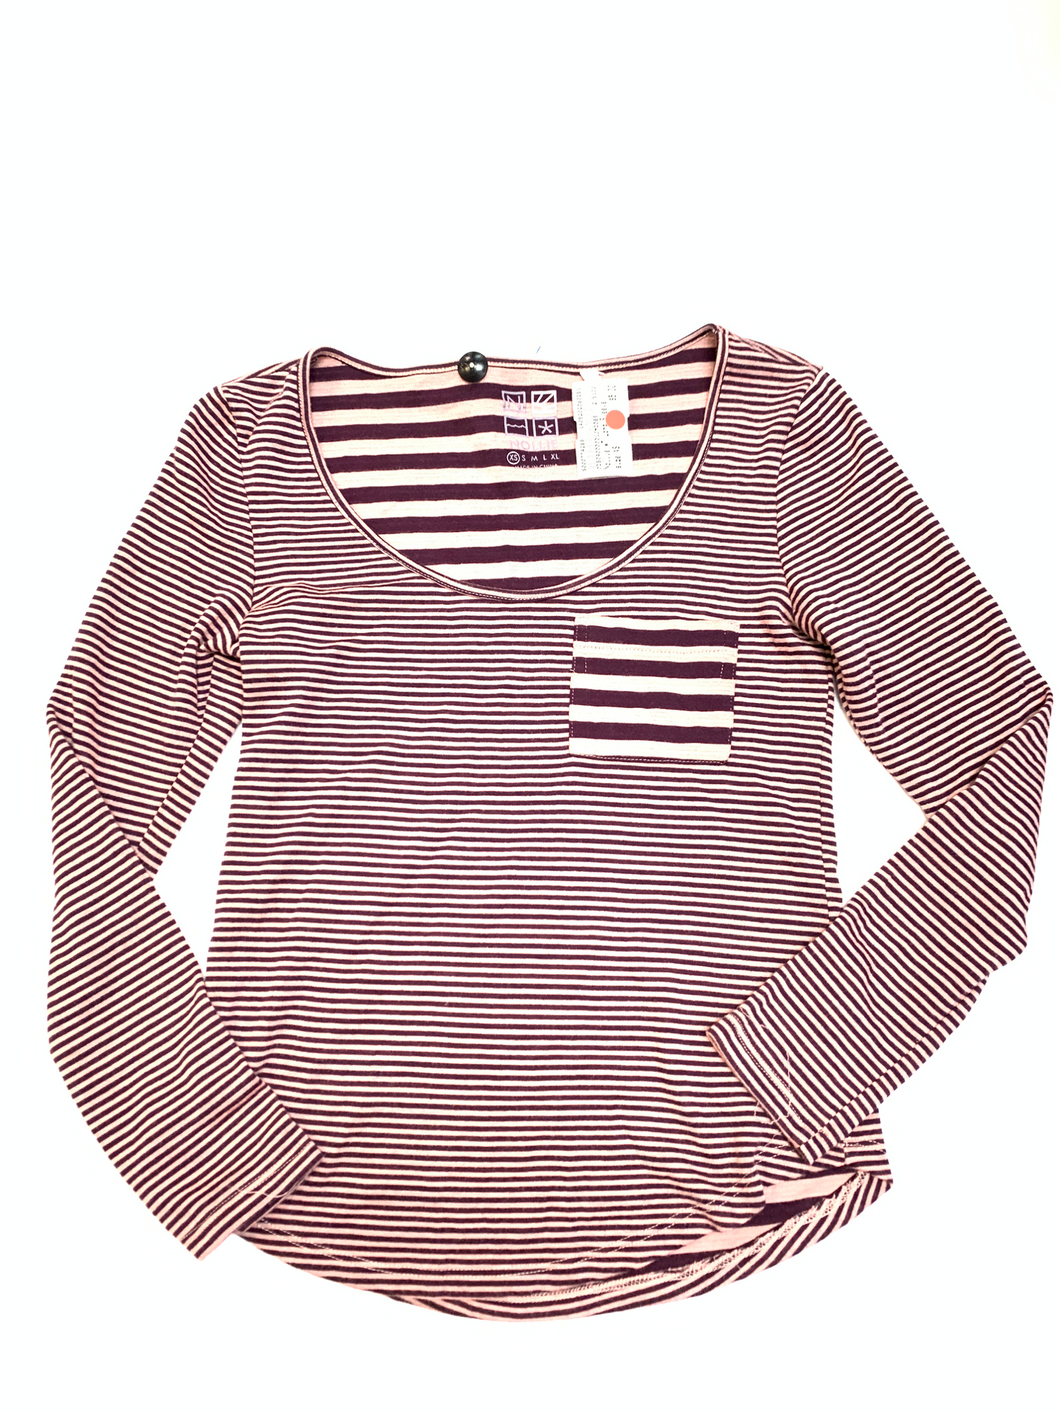 Nollie Long Sleeve Top Size Extra Small